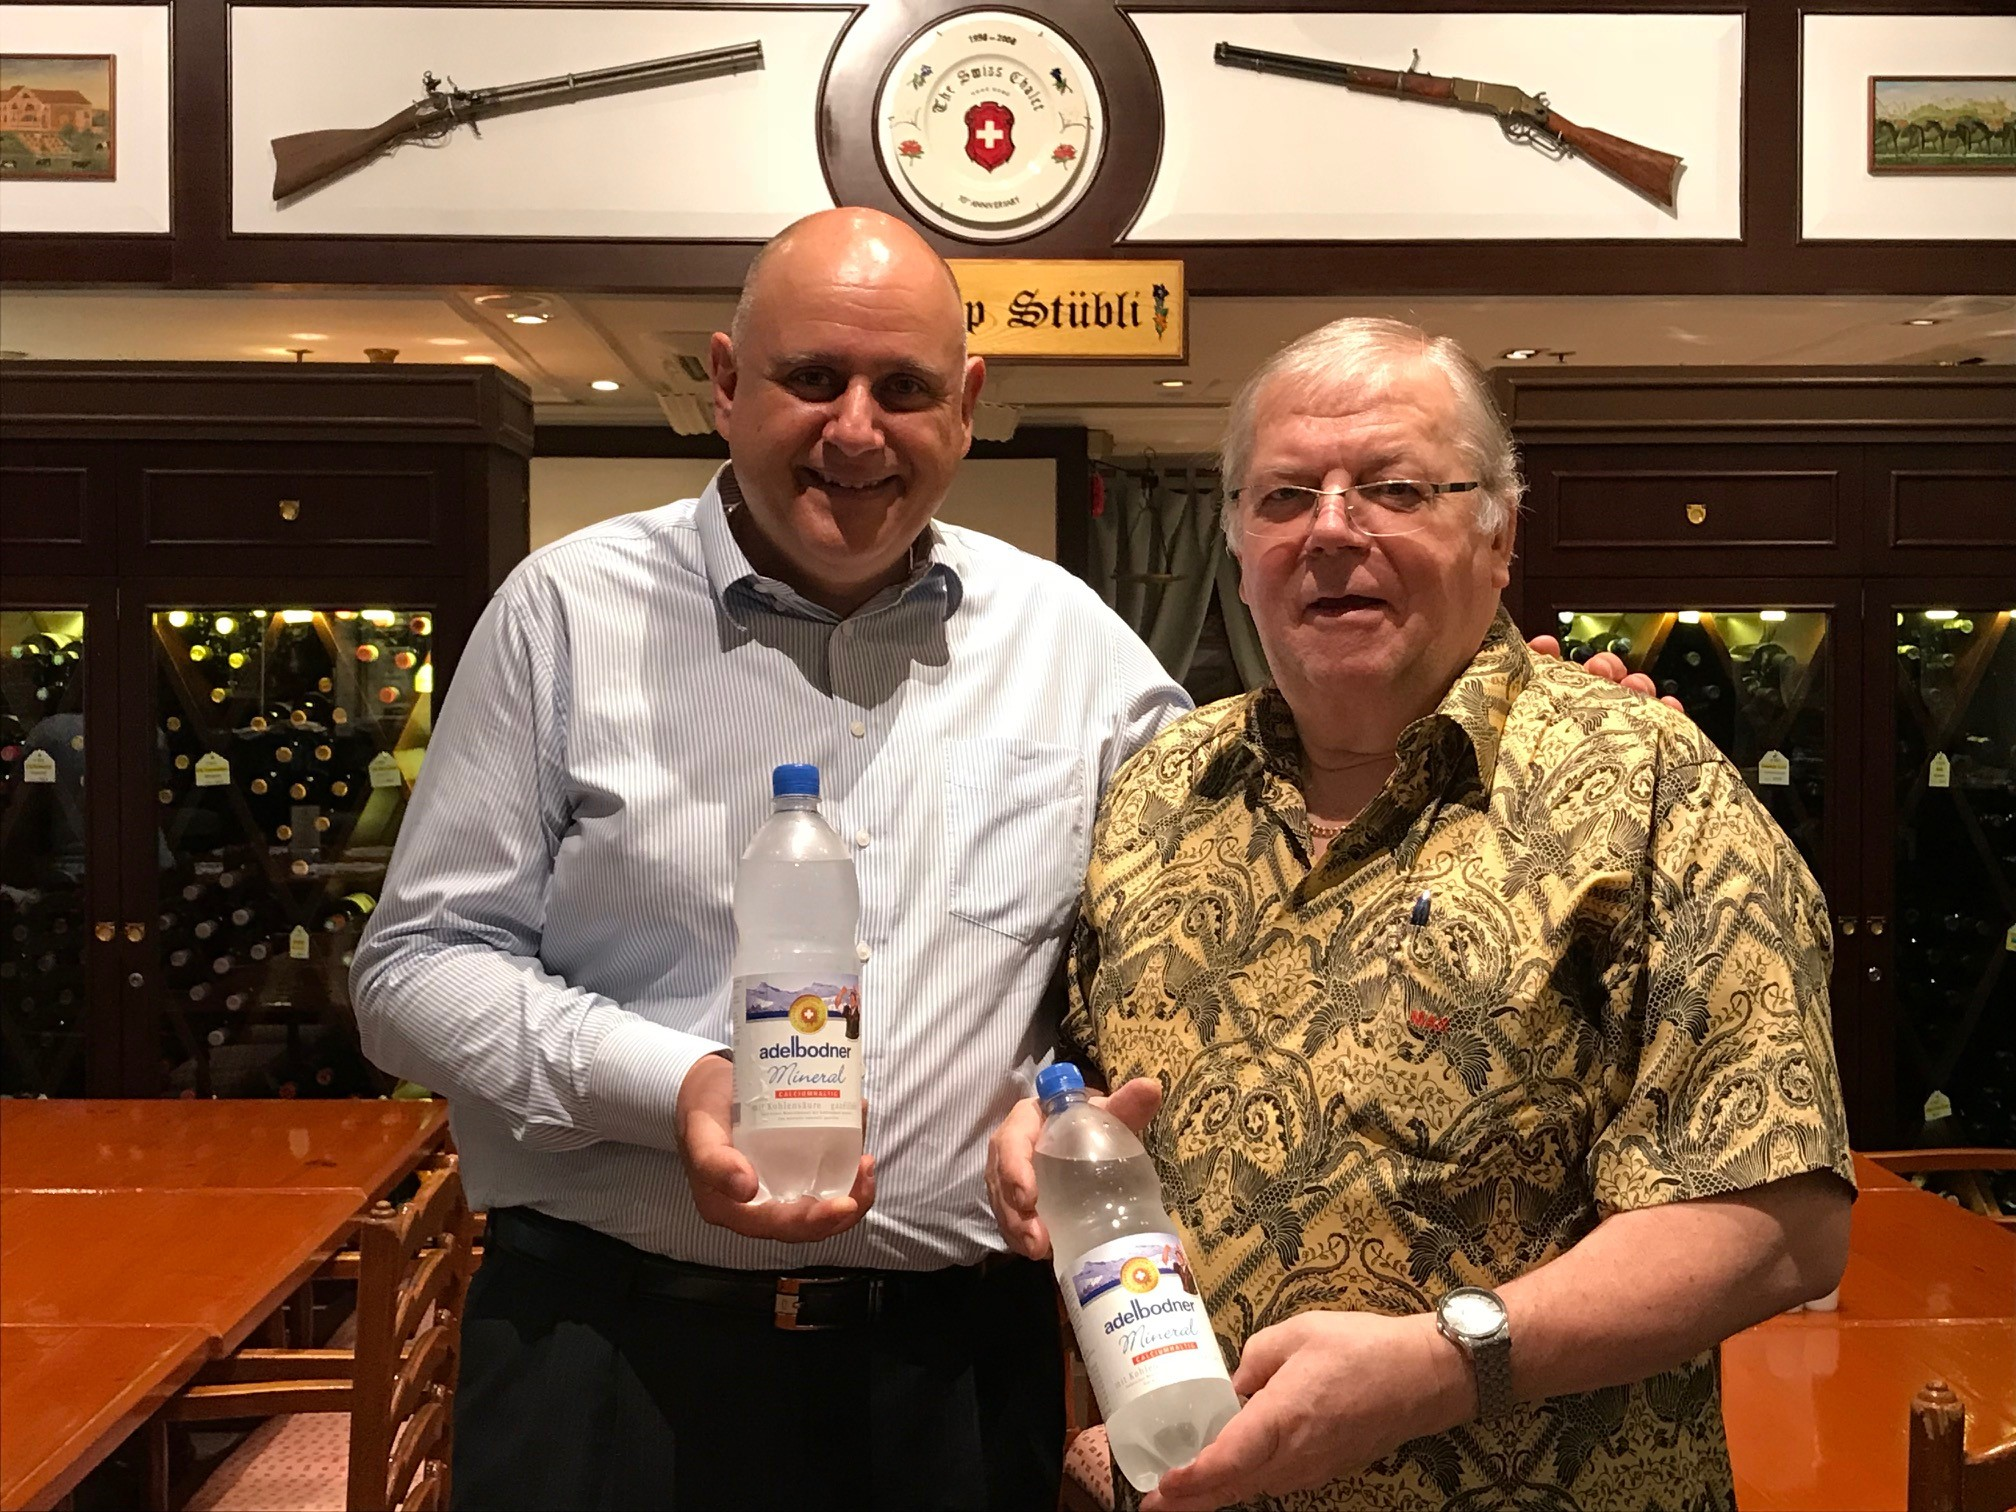 Enjoy Adelbodner Swiss Mineral Water at The Swiss Chalet Restaurant in TST